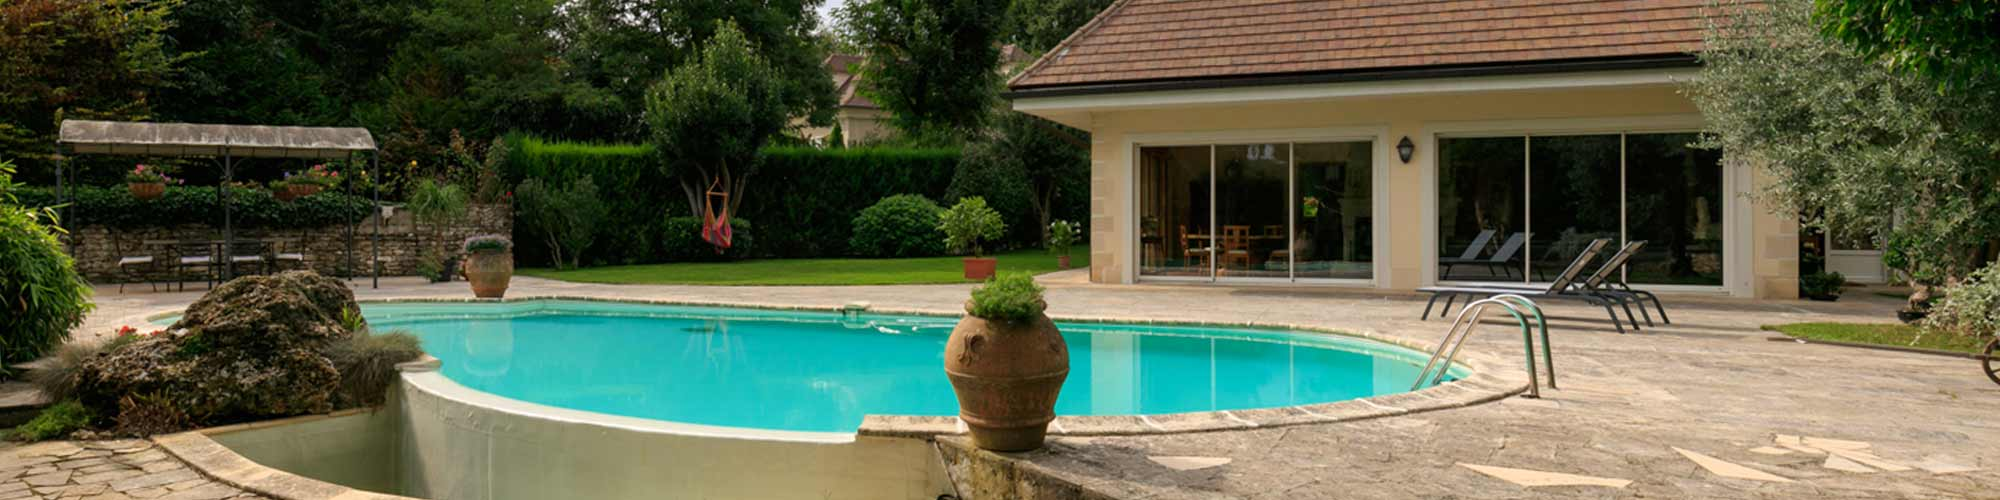 FOURQUEUX - 78112 FOURQUEUX, located in a quiet and unspoiled setting, 5 minutes from th...